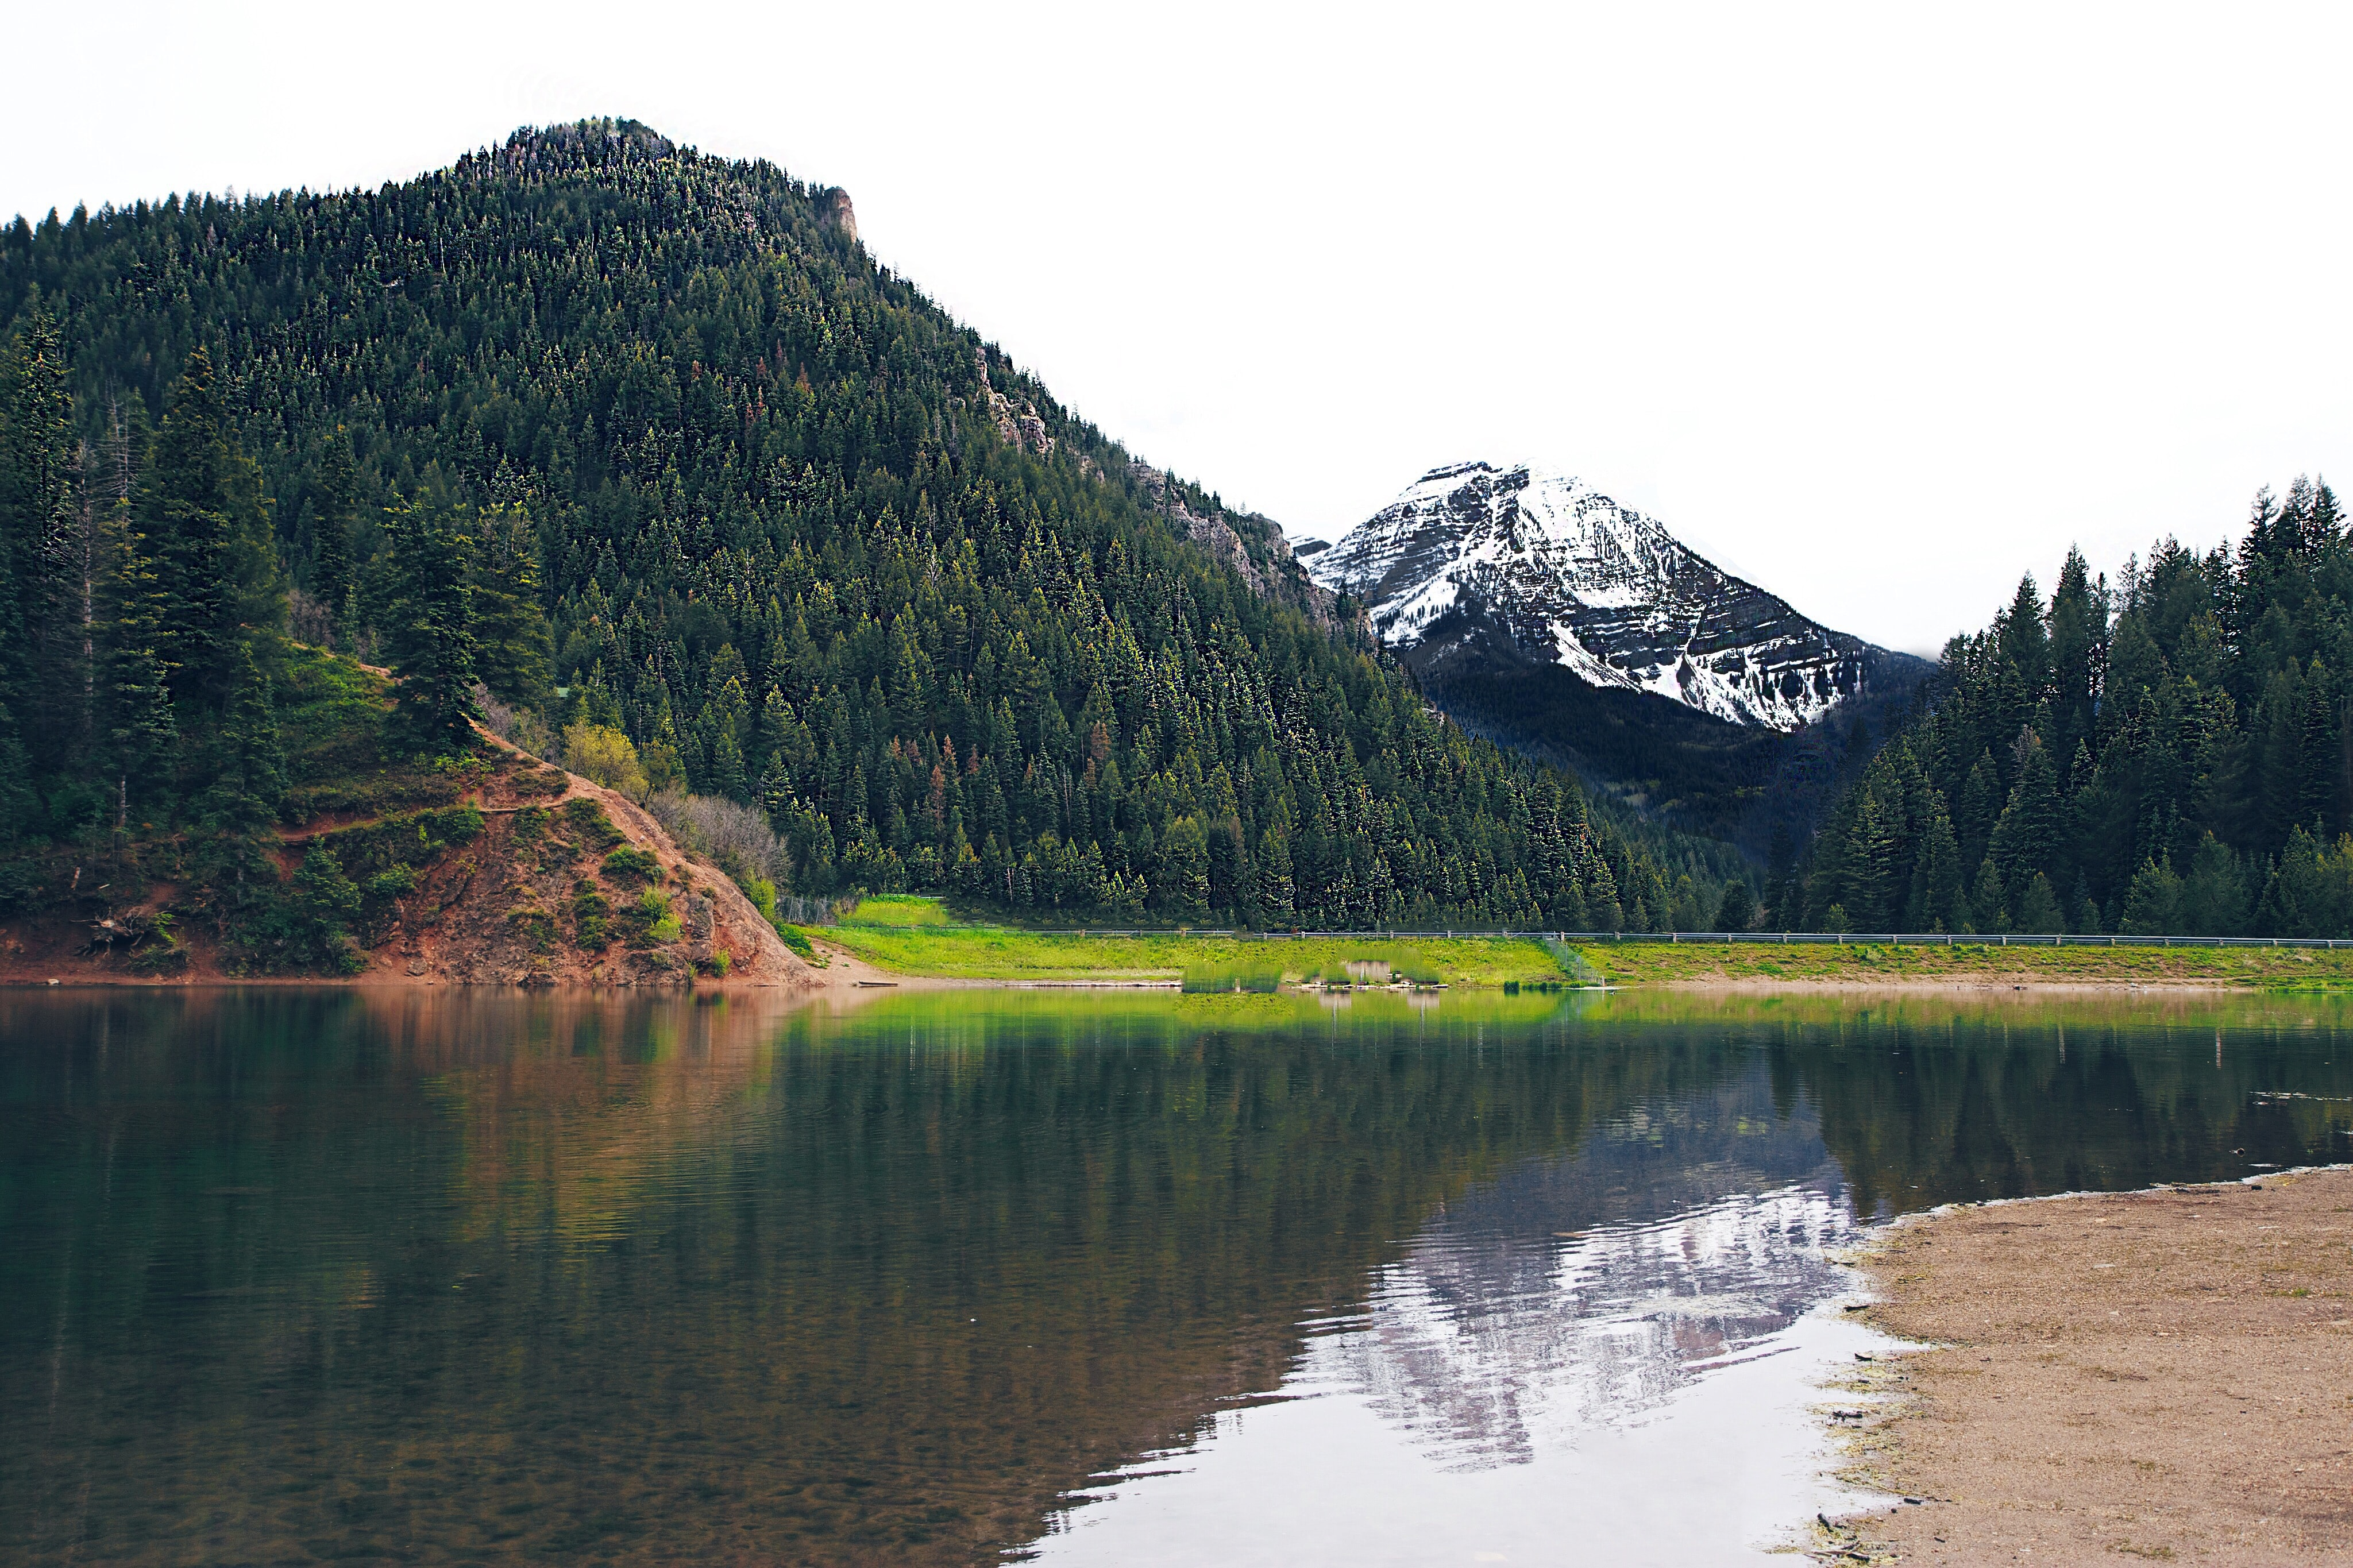 A snowy mountain reflected in a lake